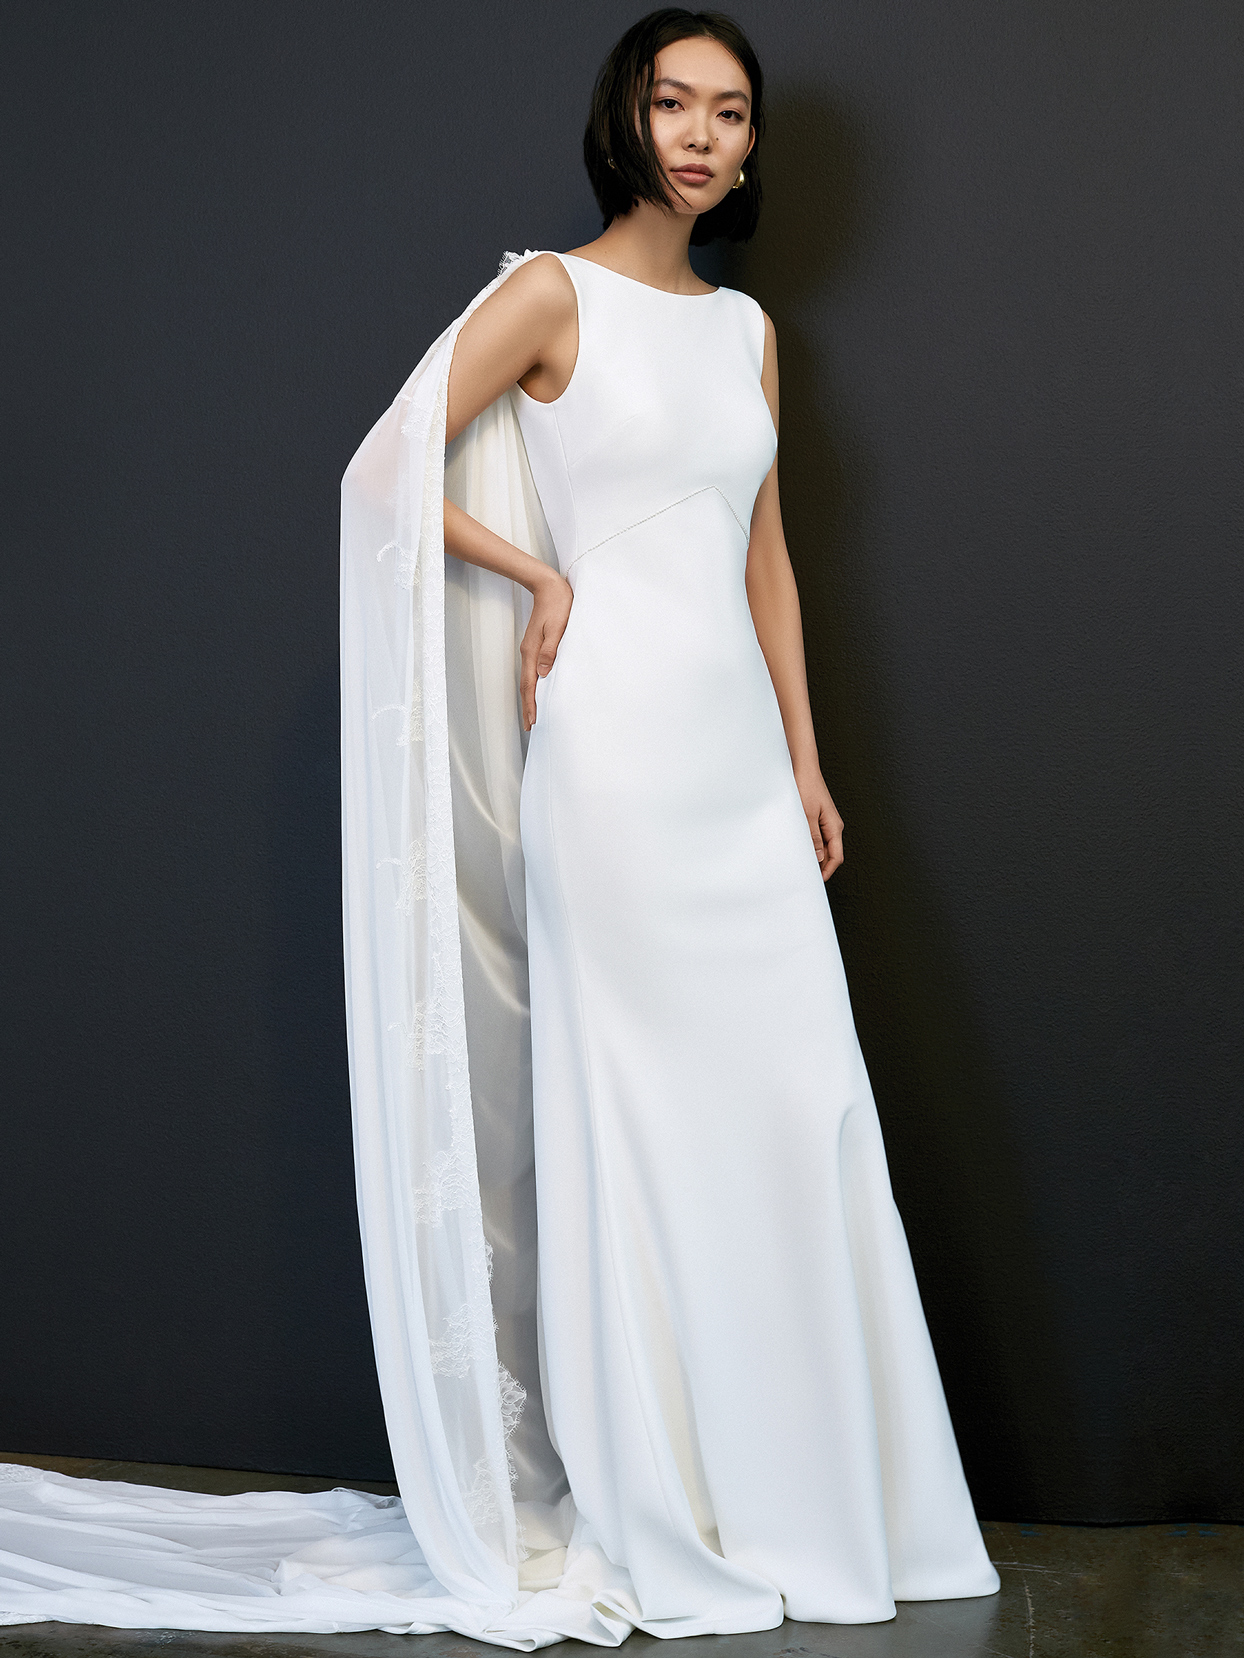 savannah miller high neck sleeveless cape wedding dress spring 2021